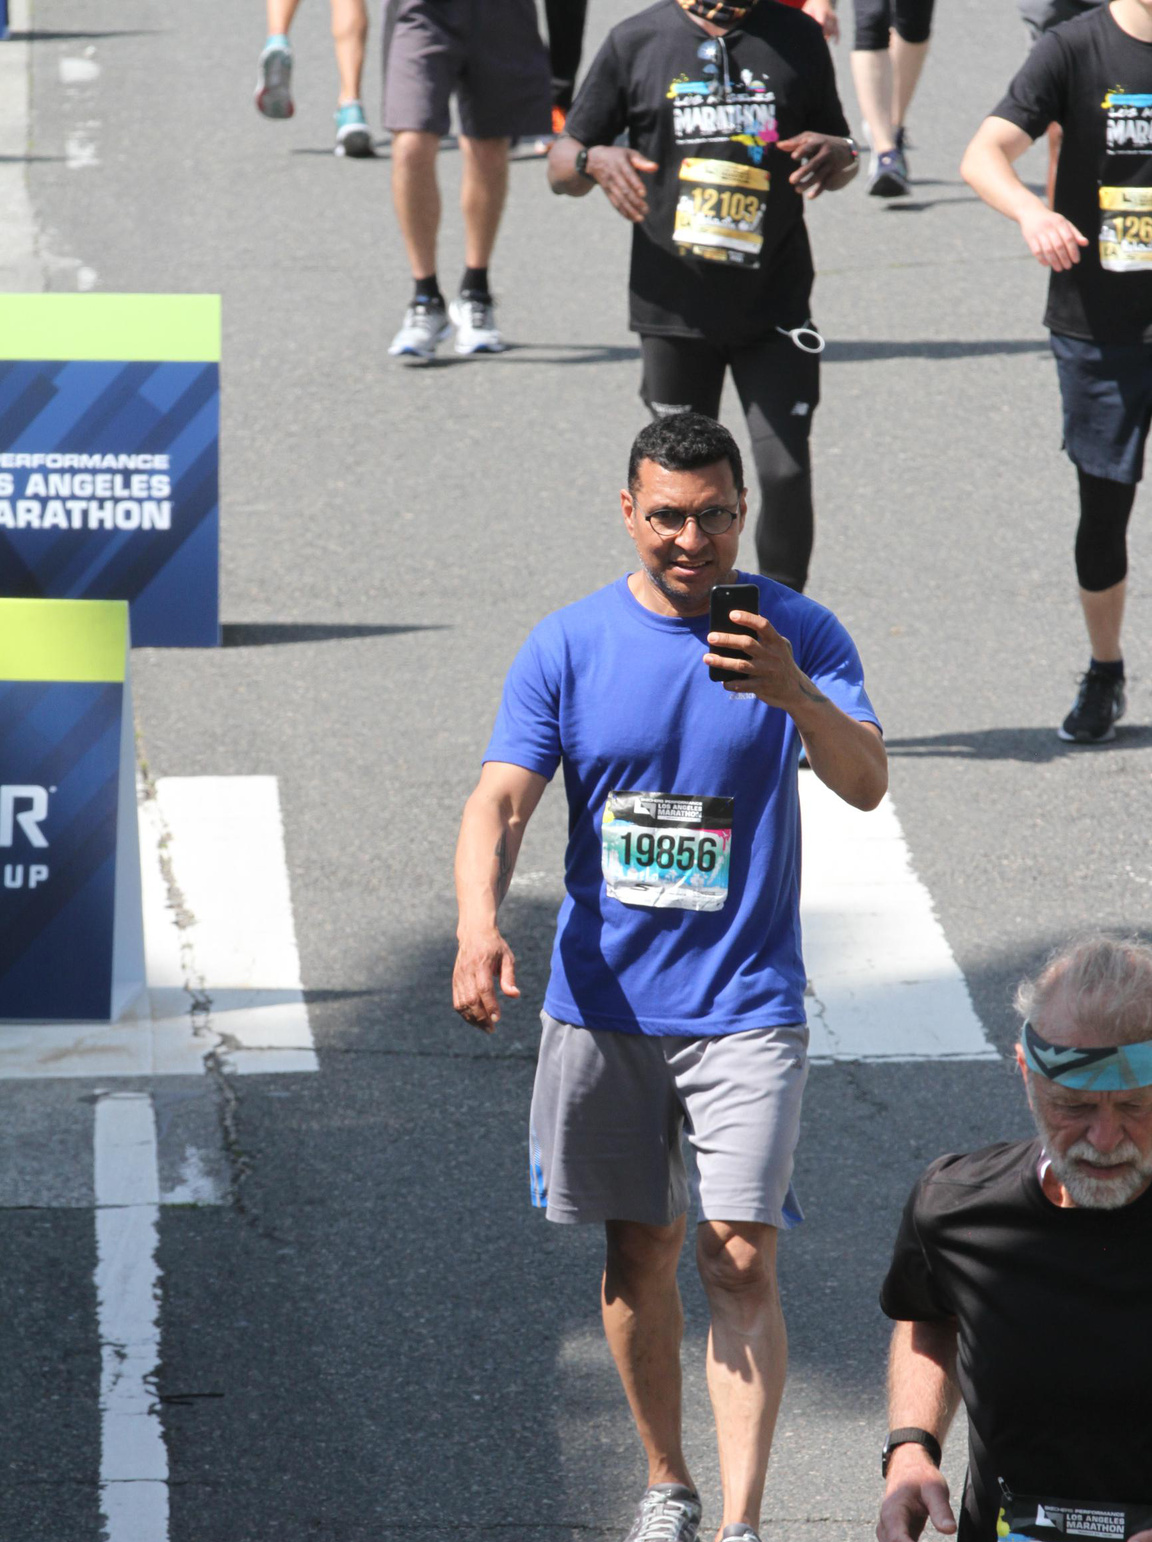 Omar filming me as I crossed the finish line.